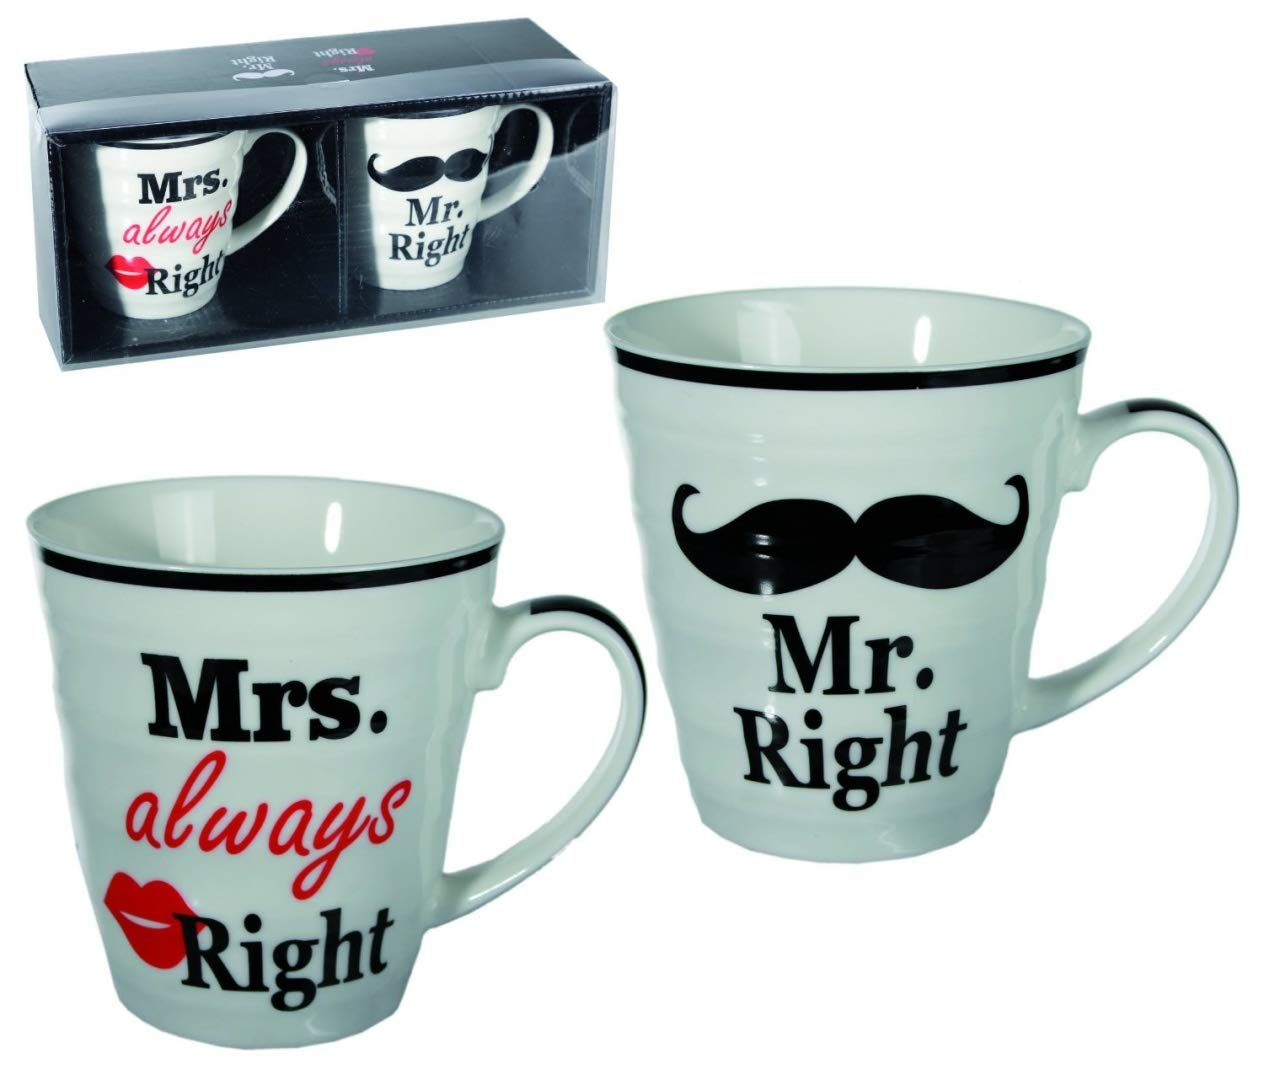 Gift, Present for Your Nan & Grandad This Christmas, Birthday - Set of 2 Mr Right & Mrs Always Right Porcelain Mug Set of 2 WW Global